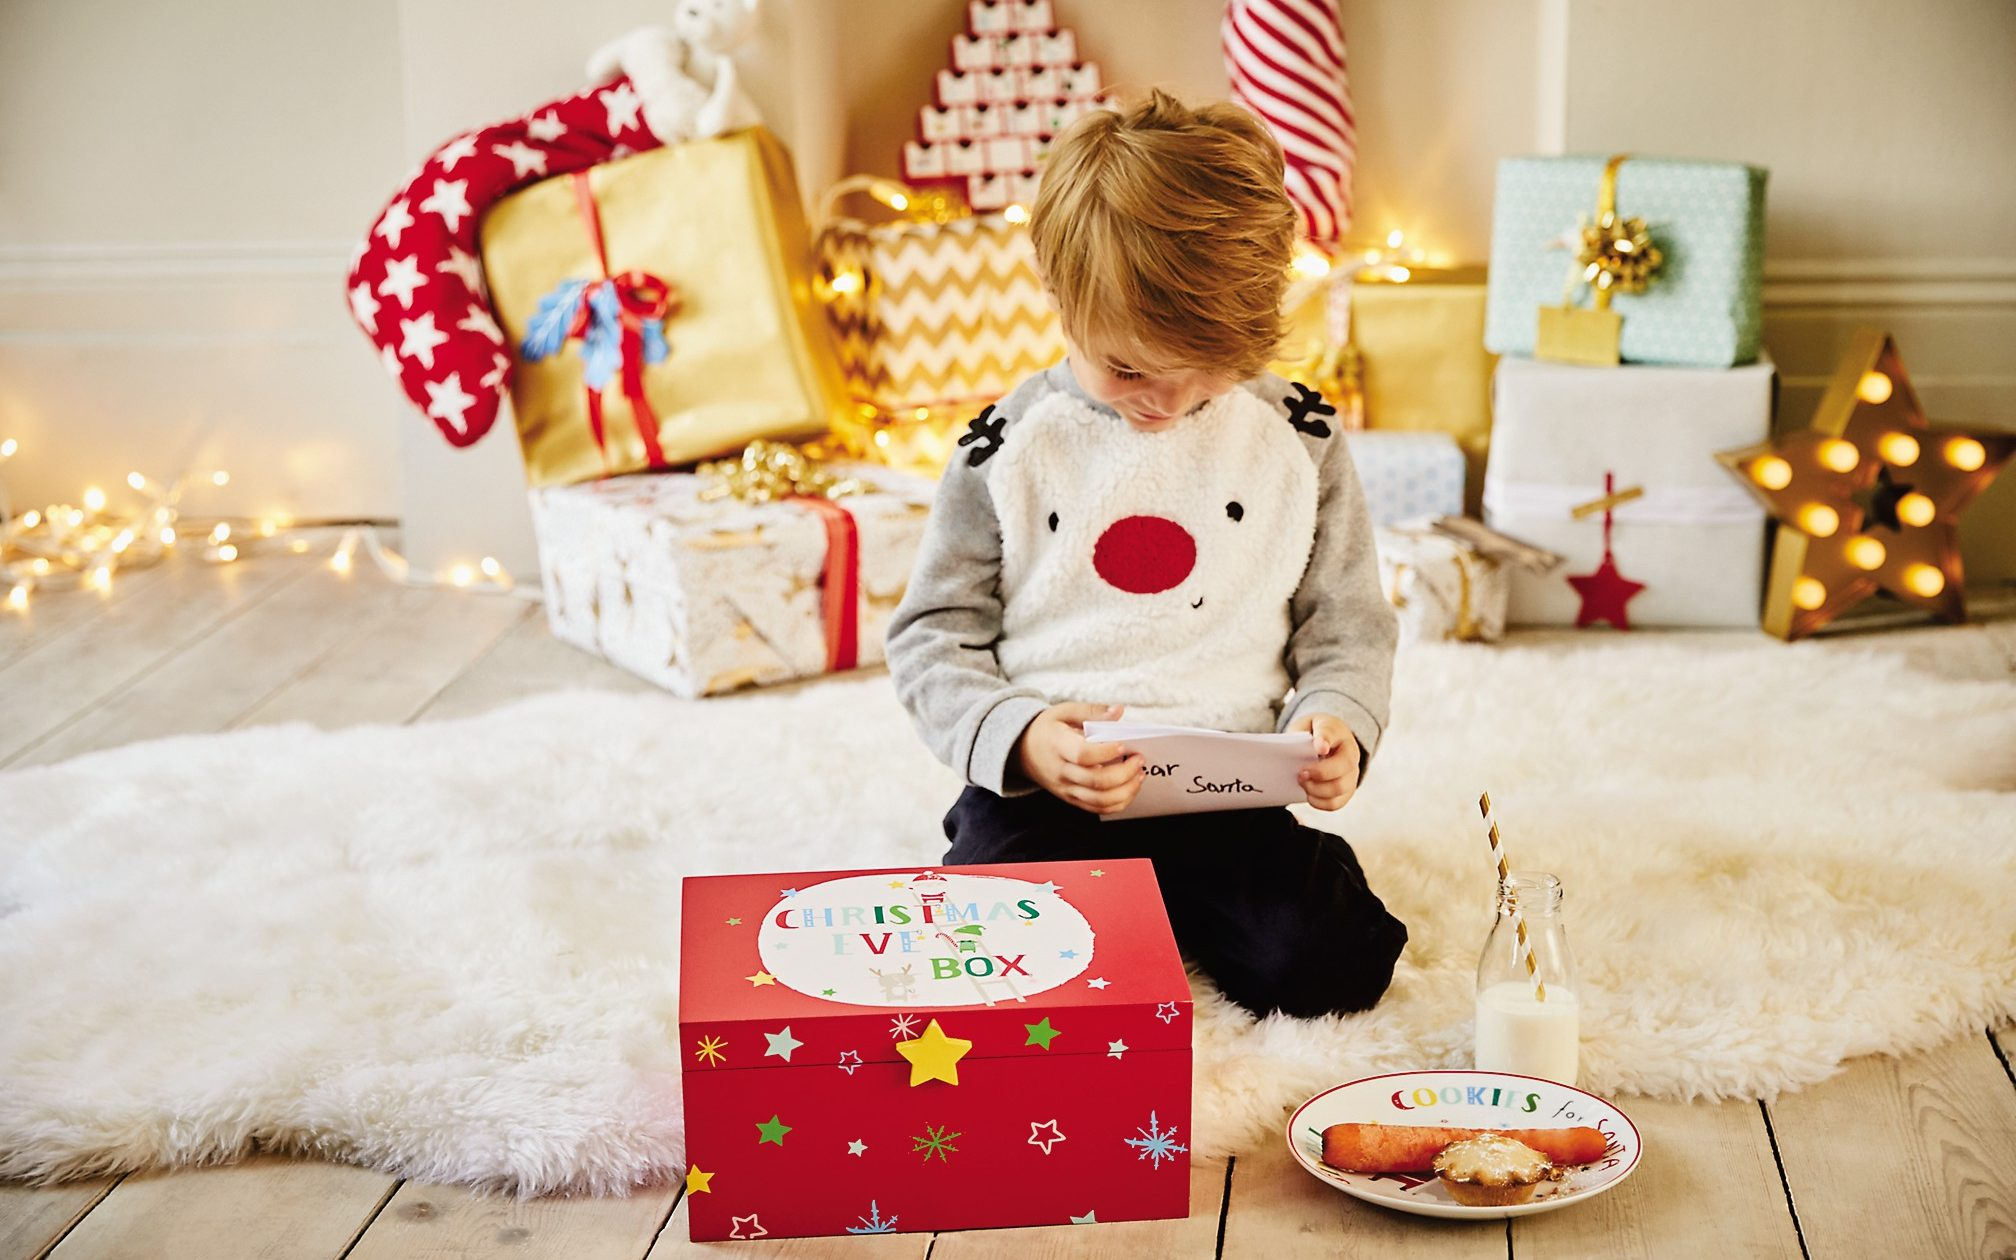 How To Make A Great Christmas Eve Box From Gift Ideas To